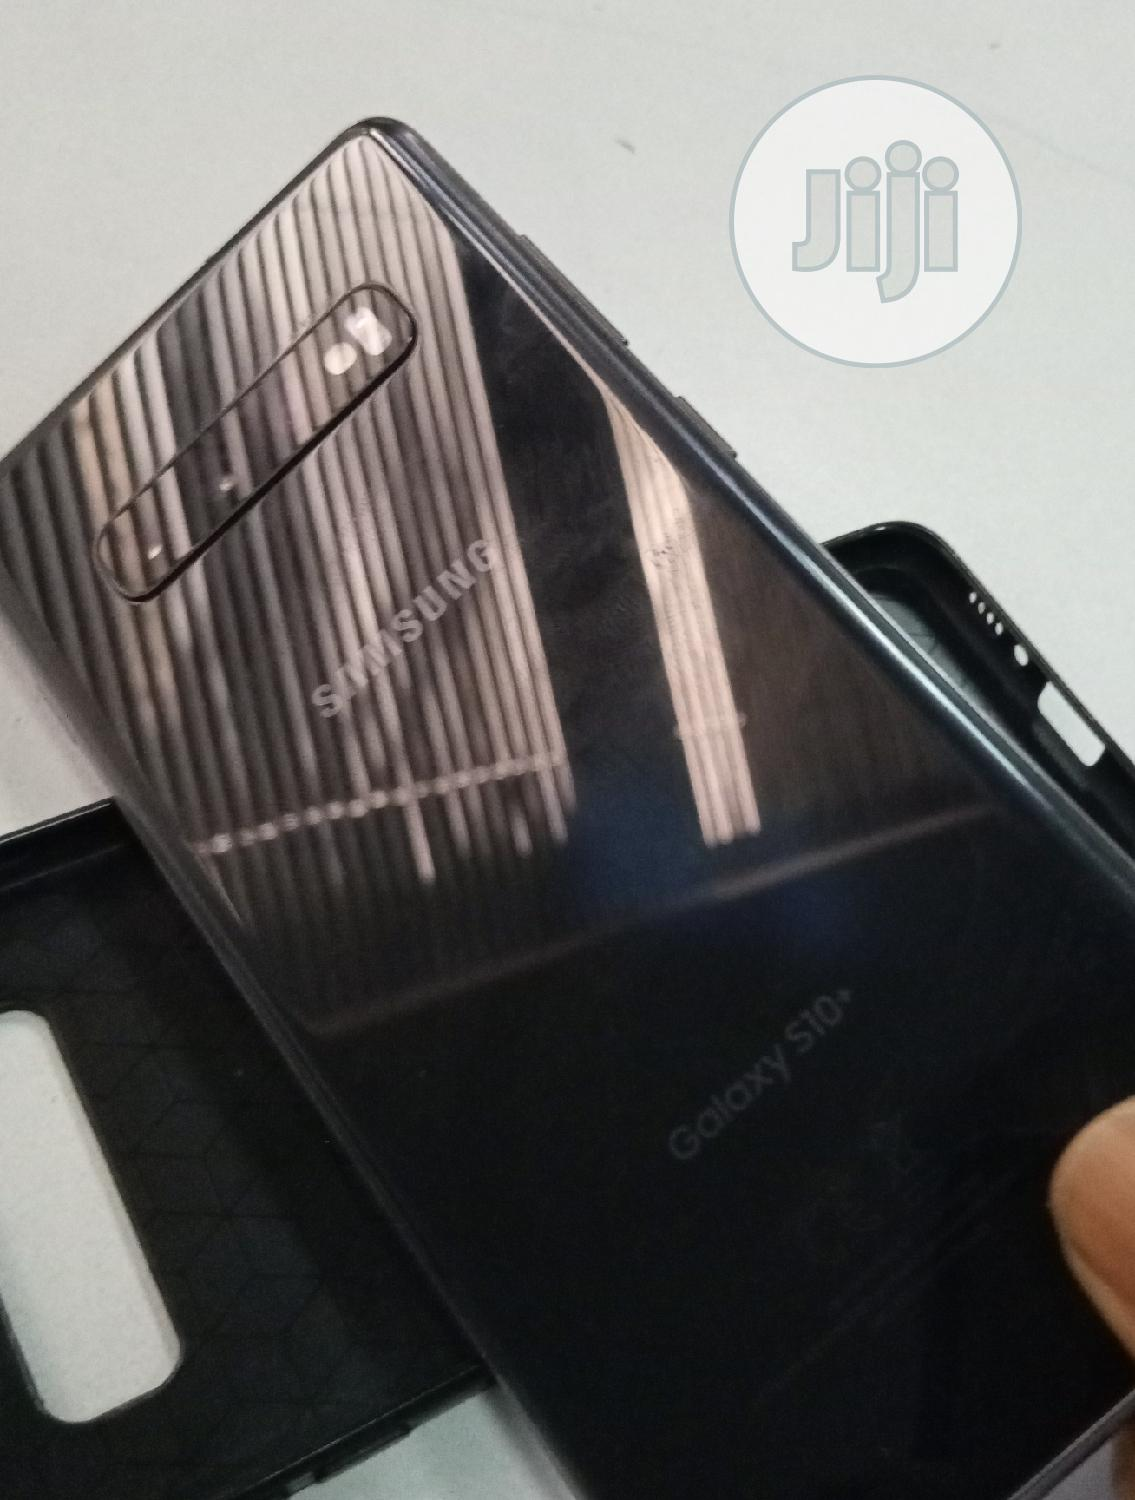 Samsung Galaxy S10 Plus 128 GB Black | Mobile Phones for sale in Port-Harcourt, Rivers State, Nigeria